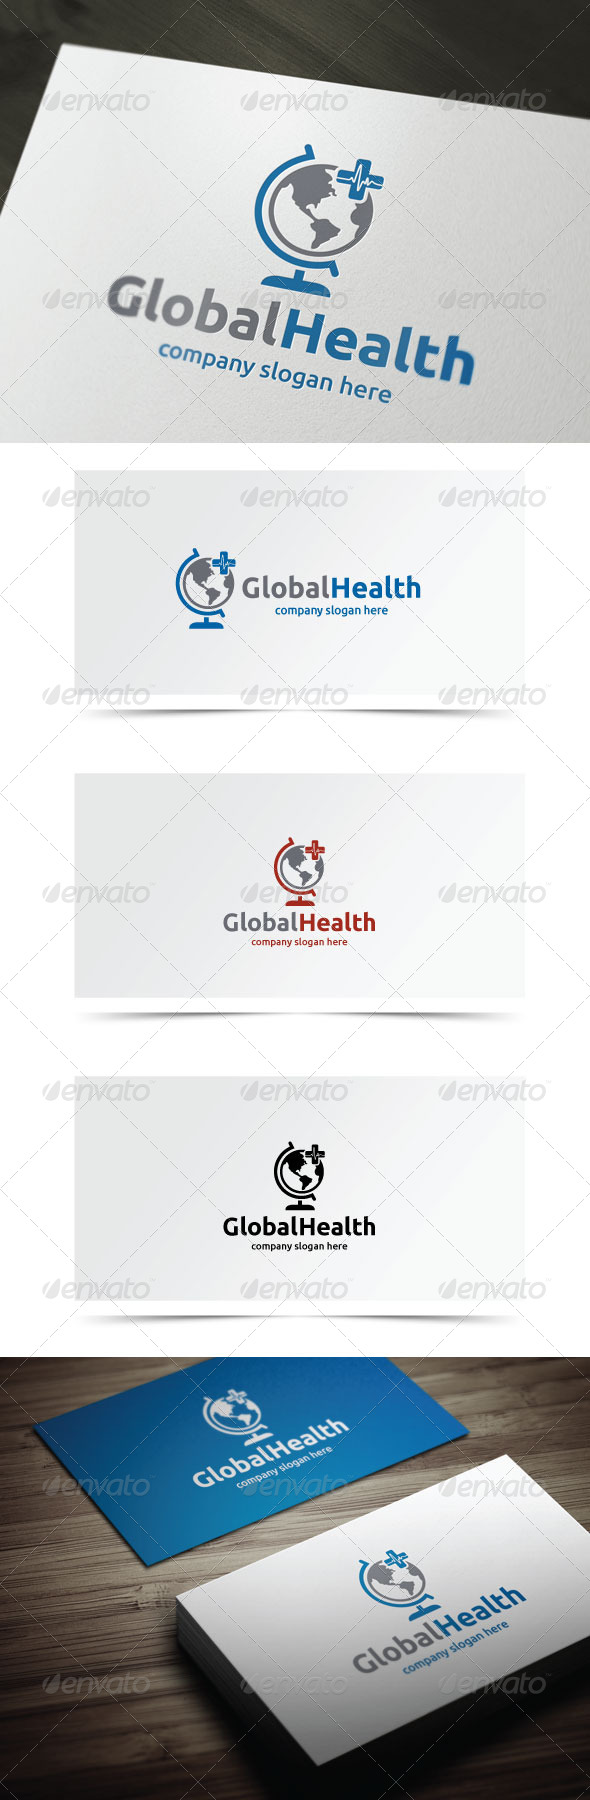 GraphicRiver Global Health 6603793